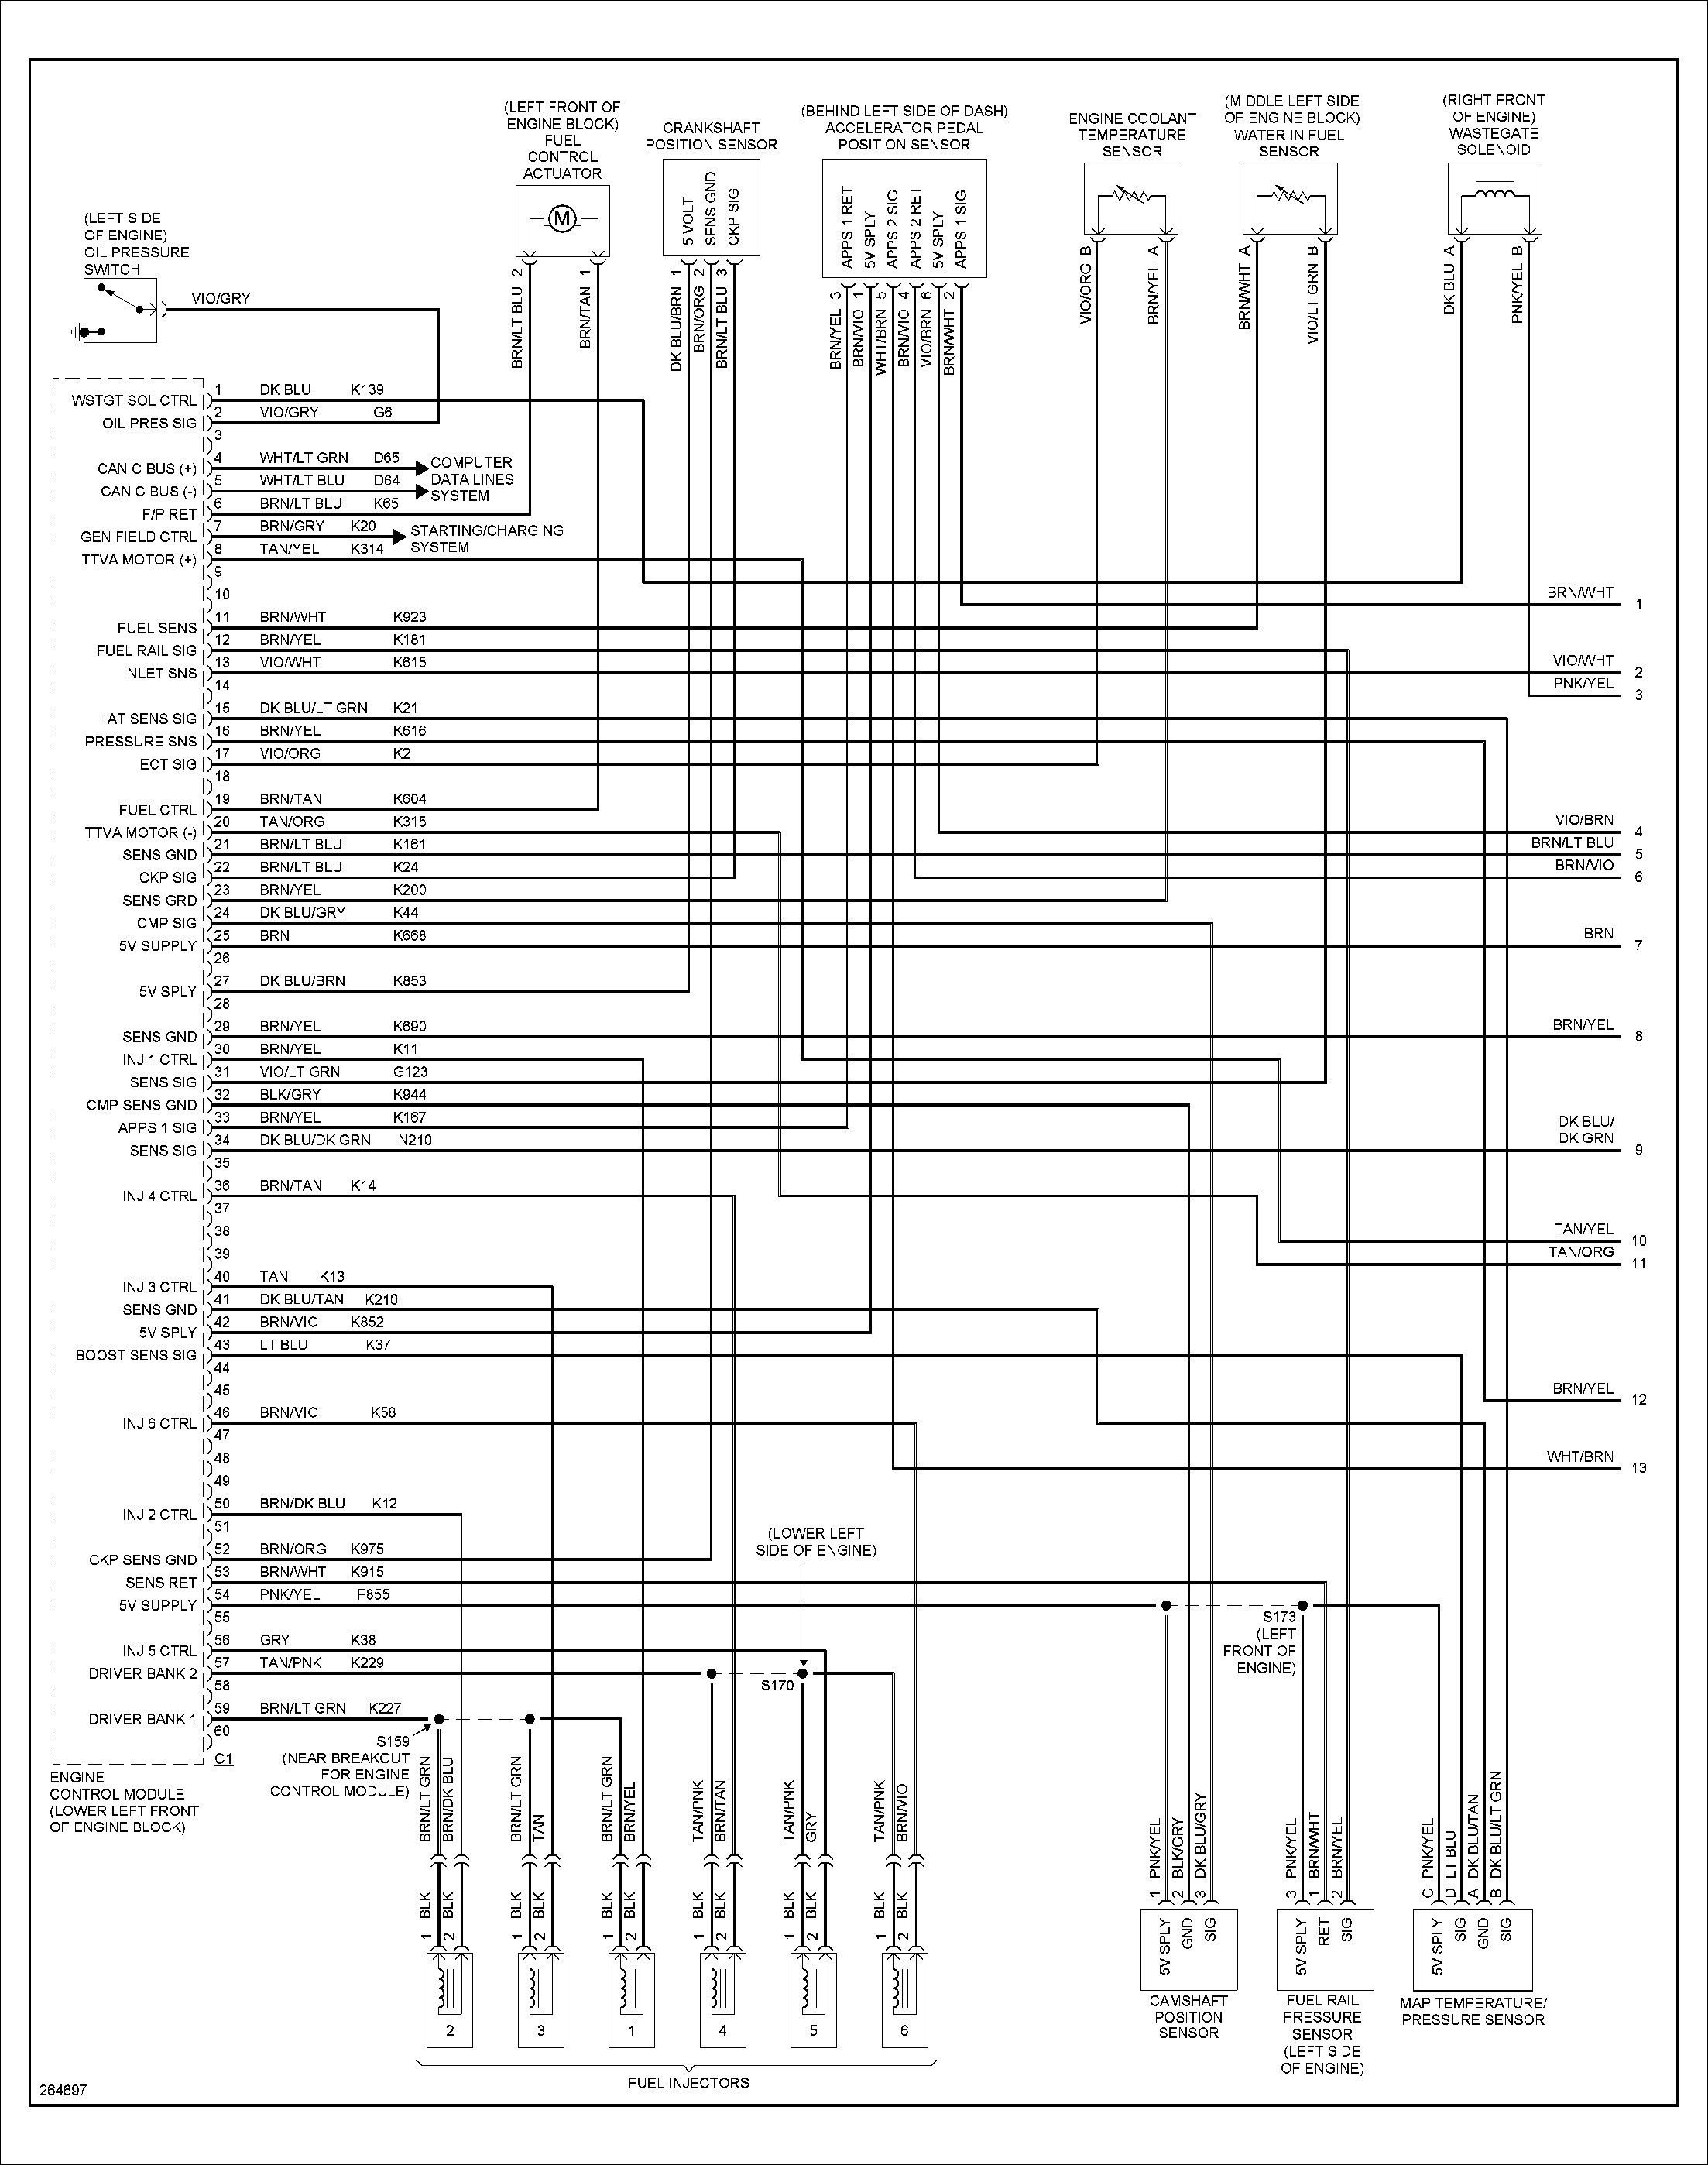 trans wiring diagram 2007 dodge 350 - diagram design sources  electrical-snake - electrical-snake.b-iniziative.it  diagram database - b-iniziative.it